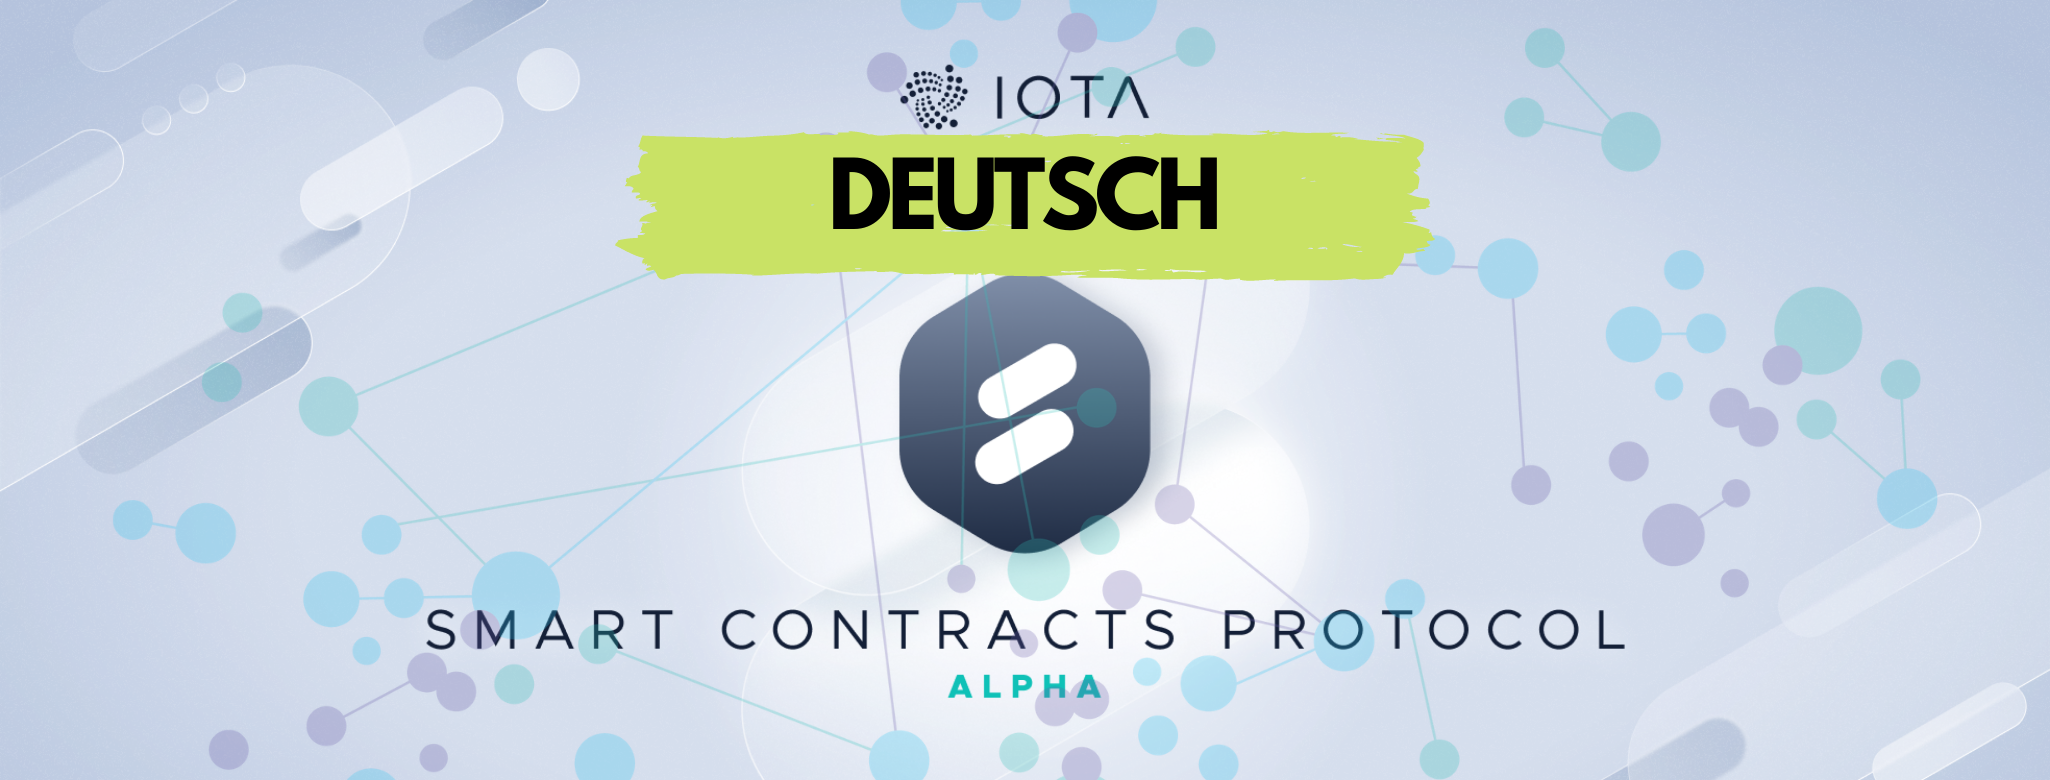 IOTA deutsch